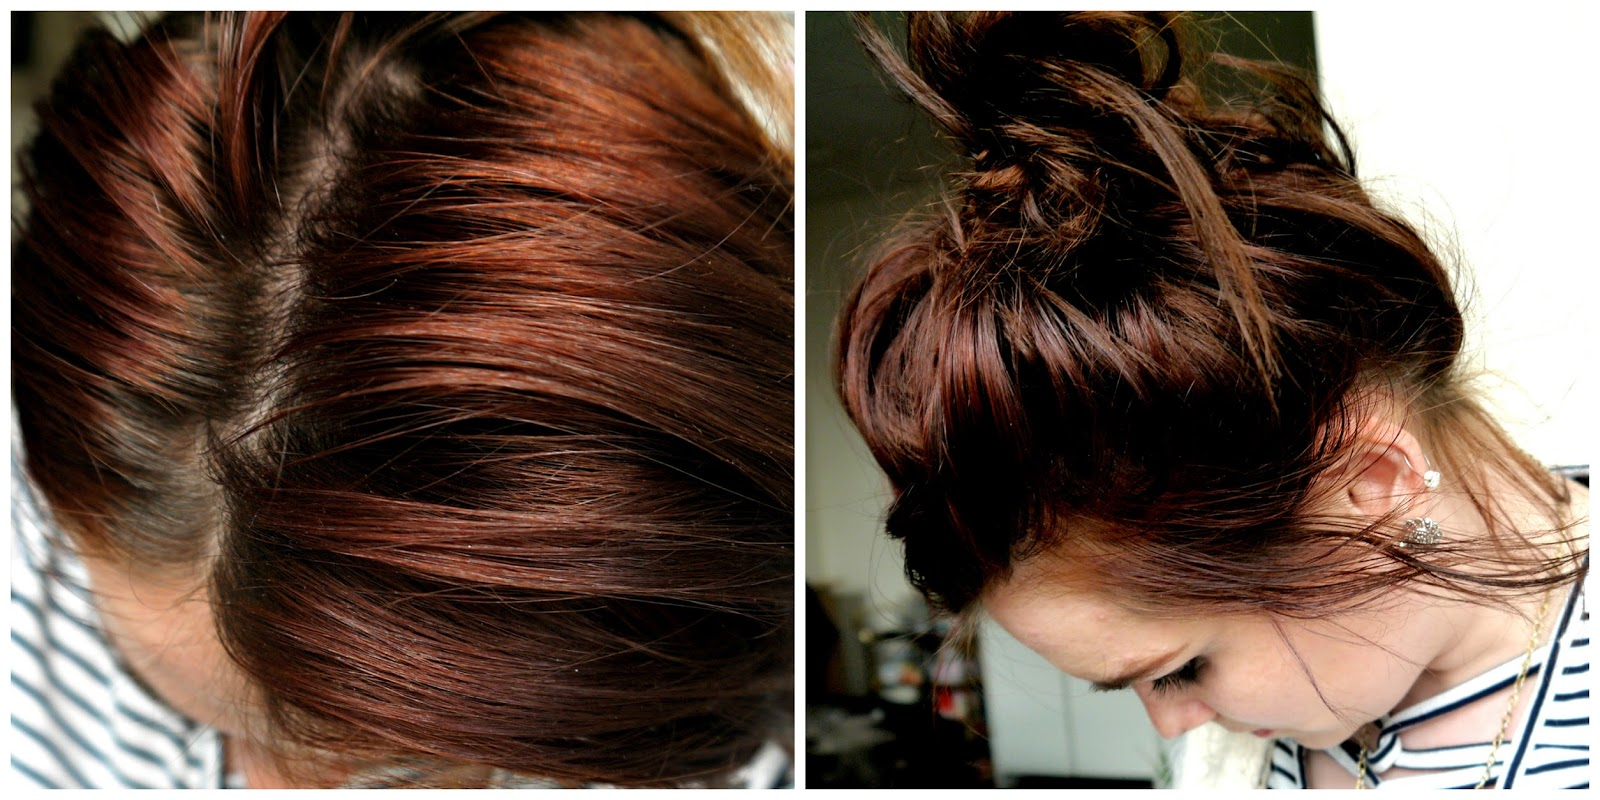 How To Dye Your Hair Light Brown Naturally